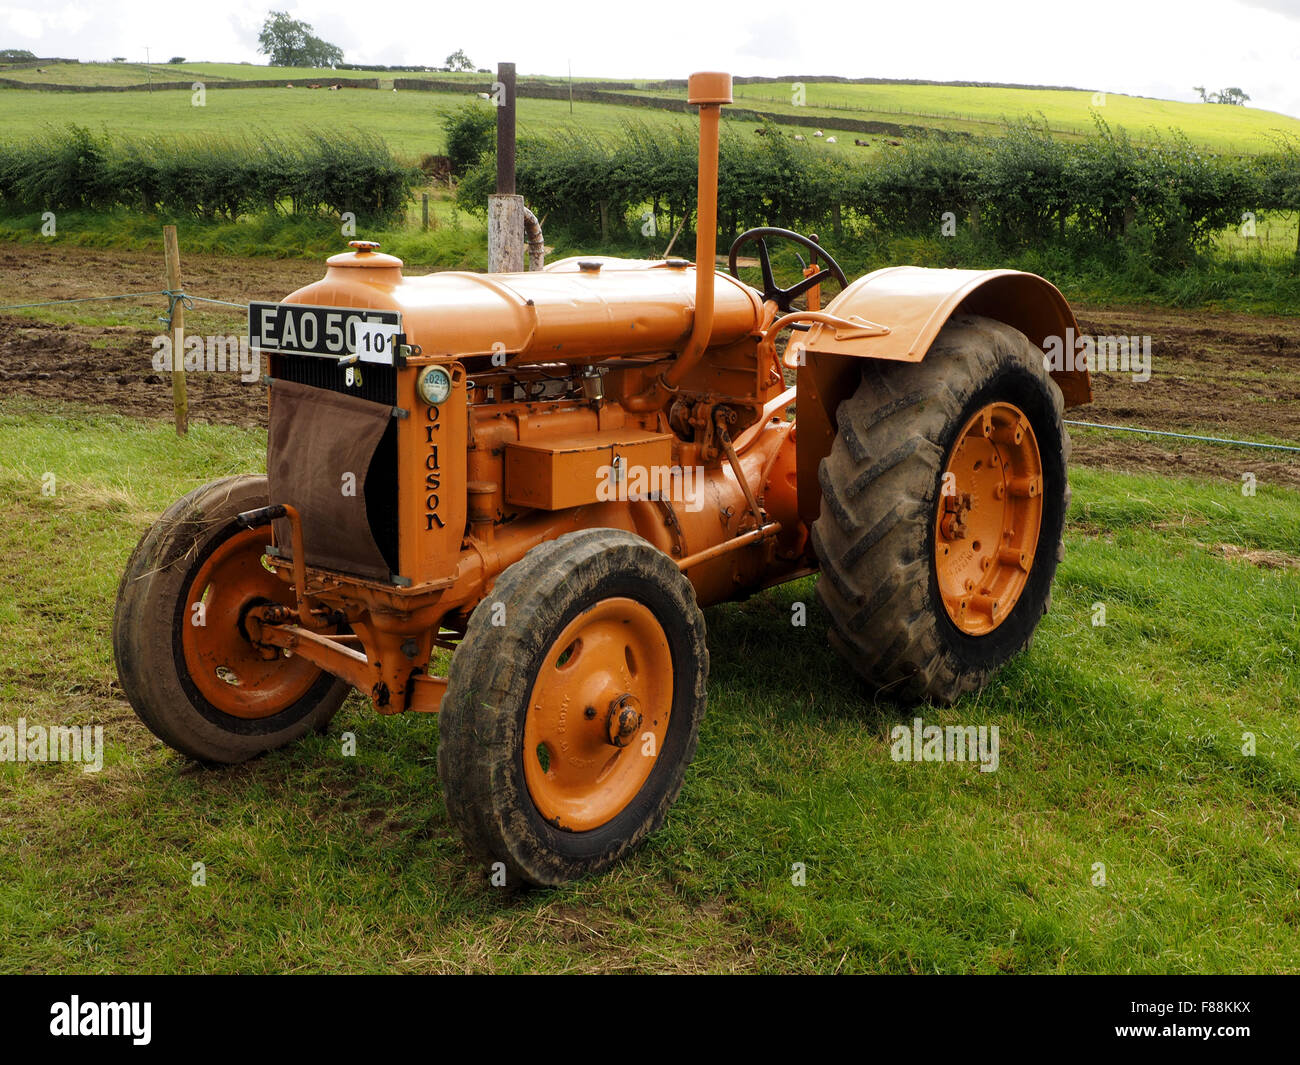 classic brown vintage tractor resplendent in show field at agricultural show - Stock Image